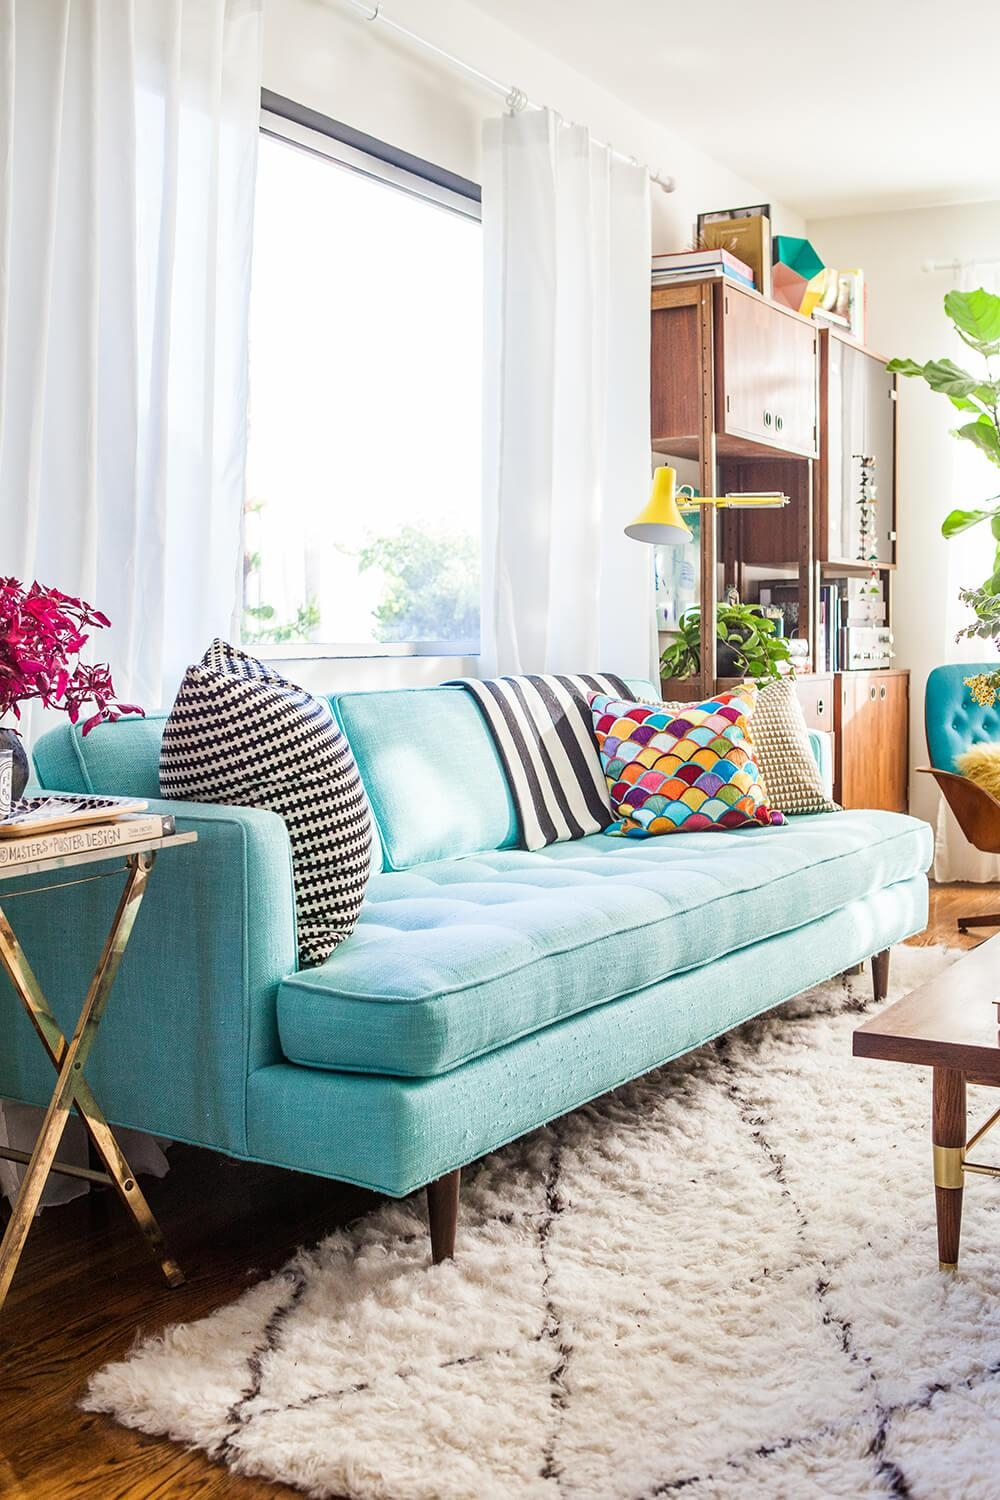 84 Affordable Amazing Sofas Under $1000 - Emily Henderson throughout Affordable Tufted Sofas